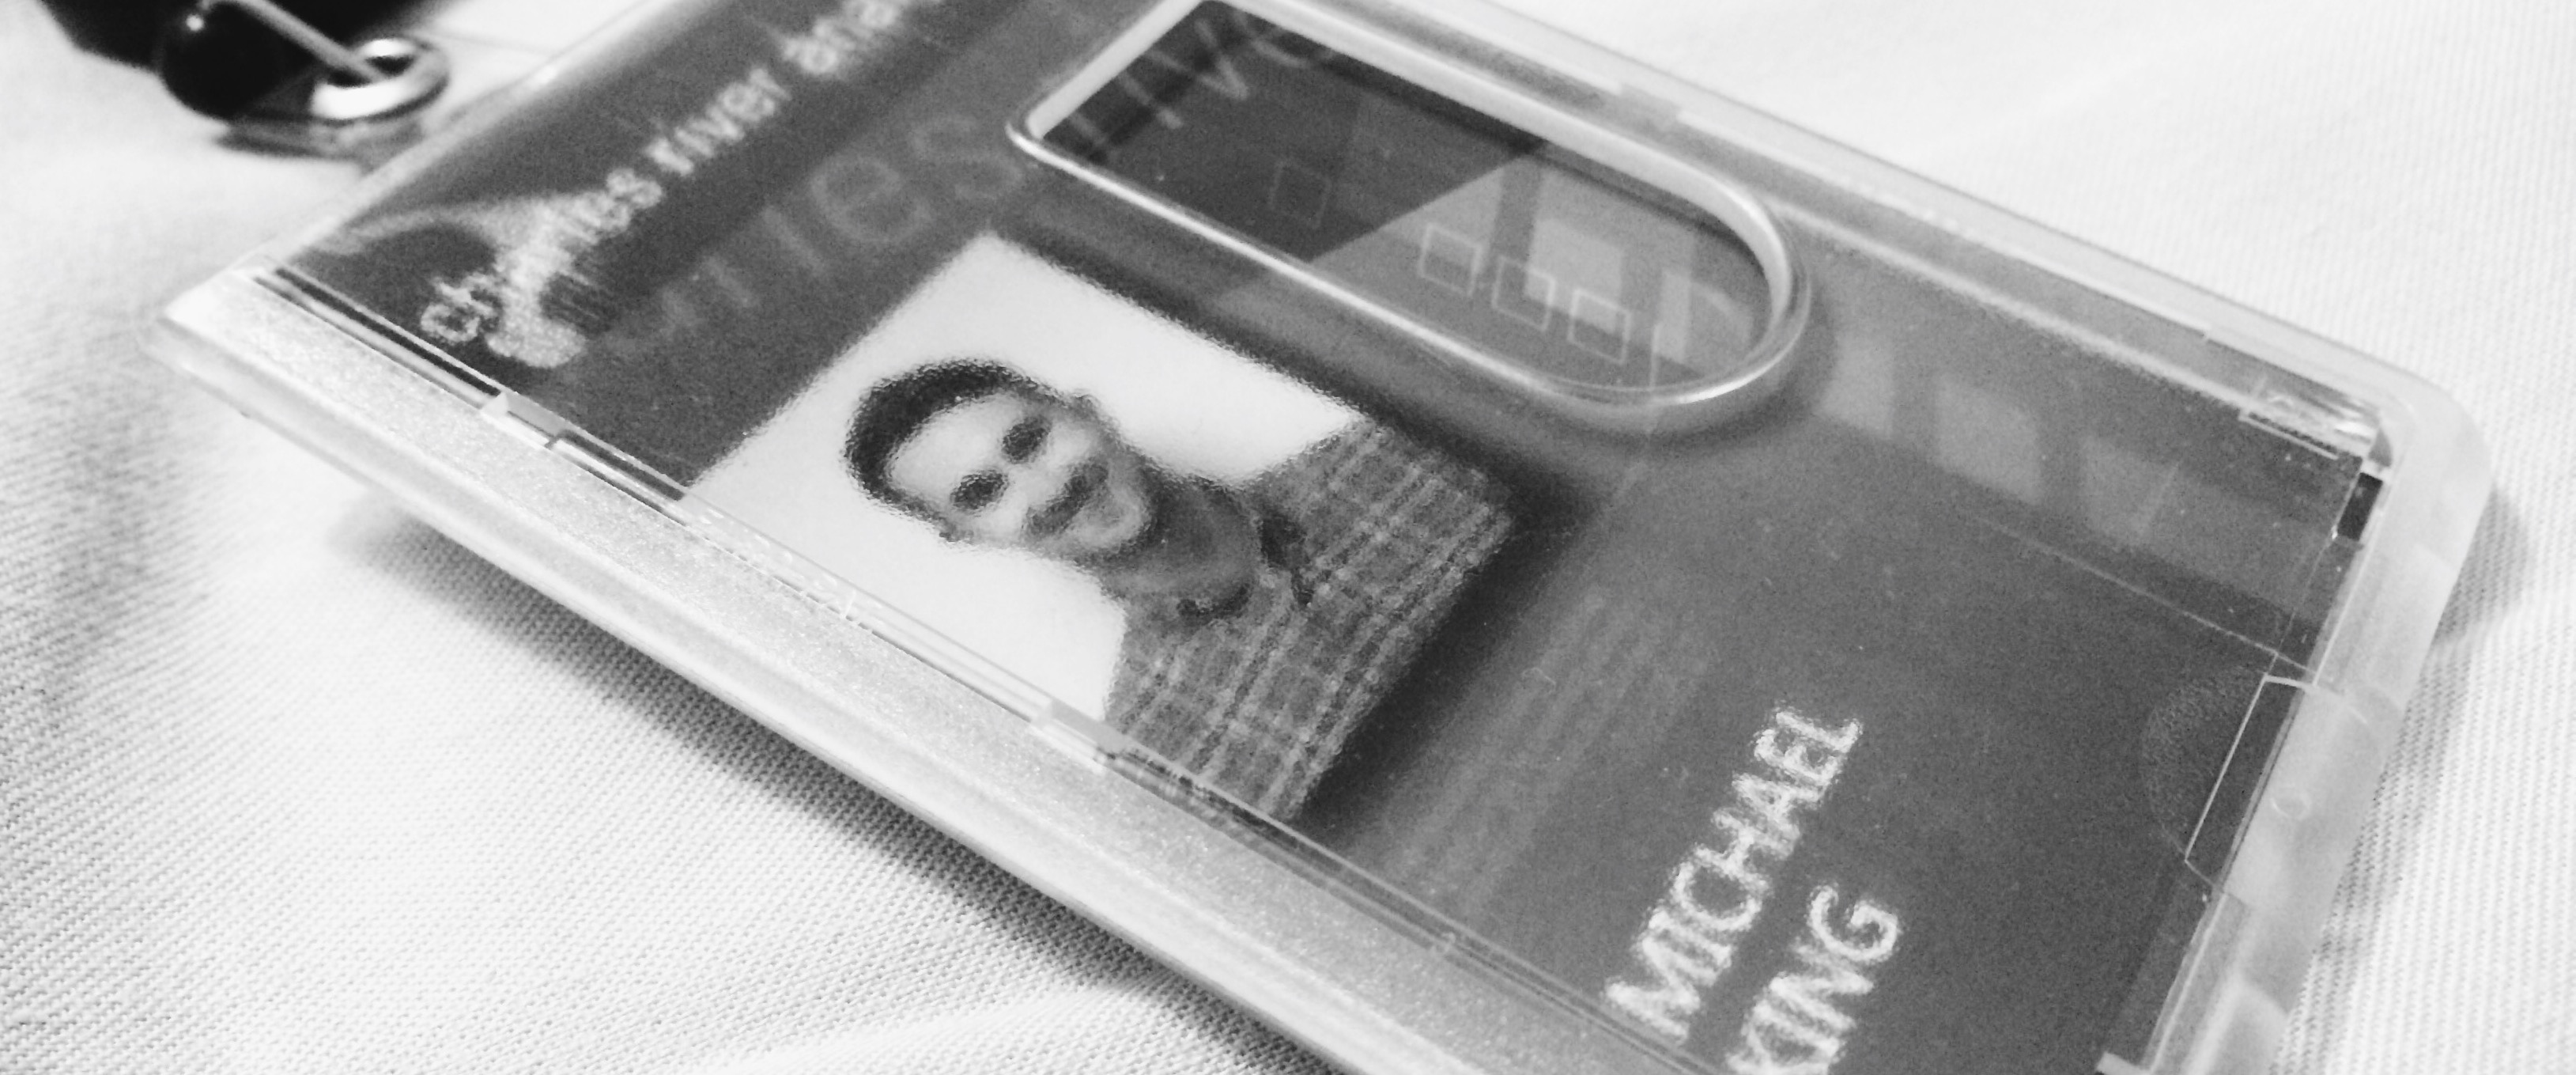 Work ID Badge